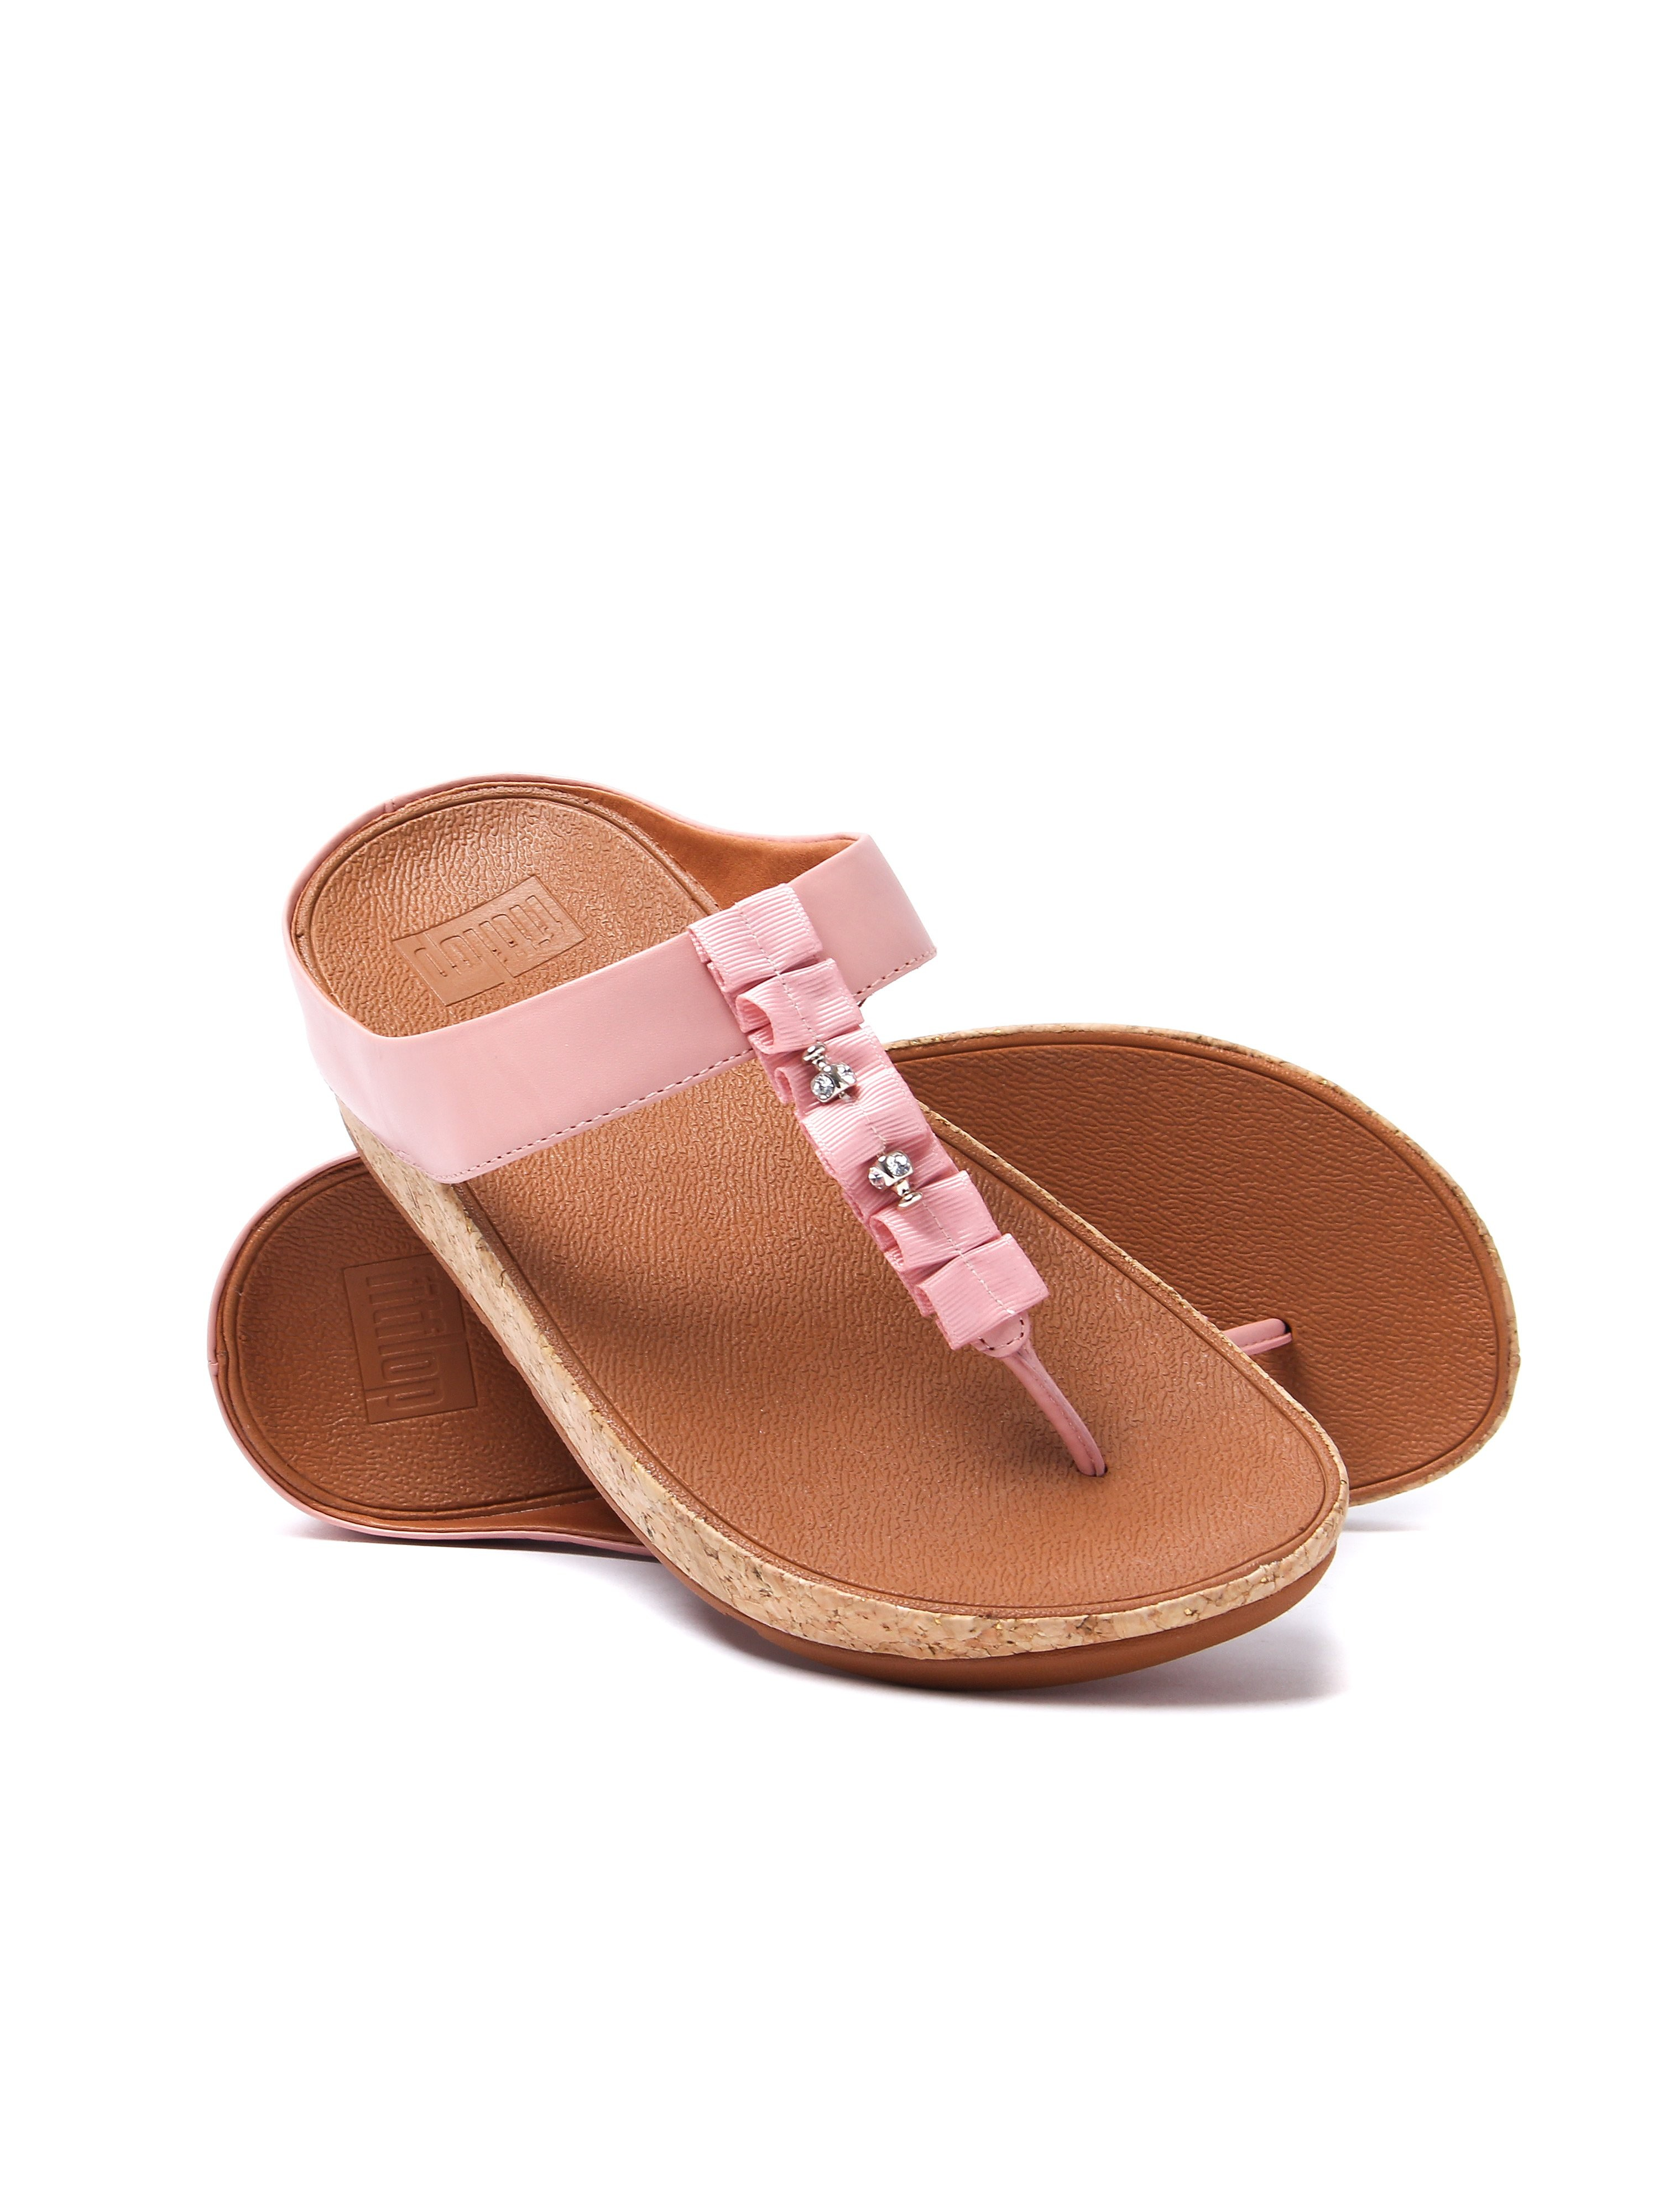 FitFlop Women's Ruffle Toe-Thong Sandals - Dusky Pink